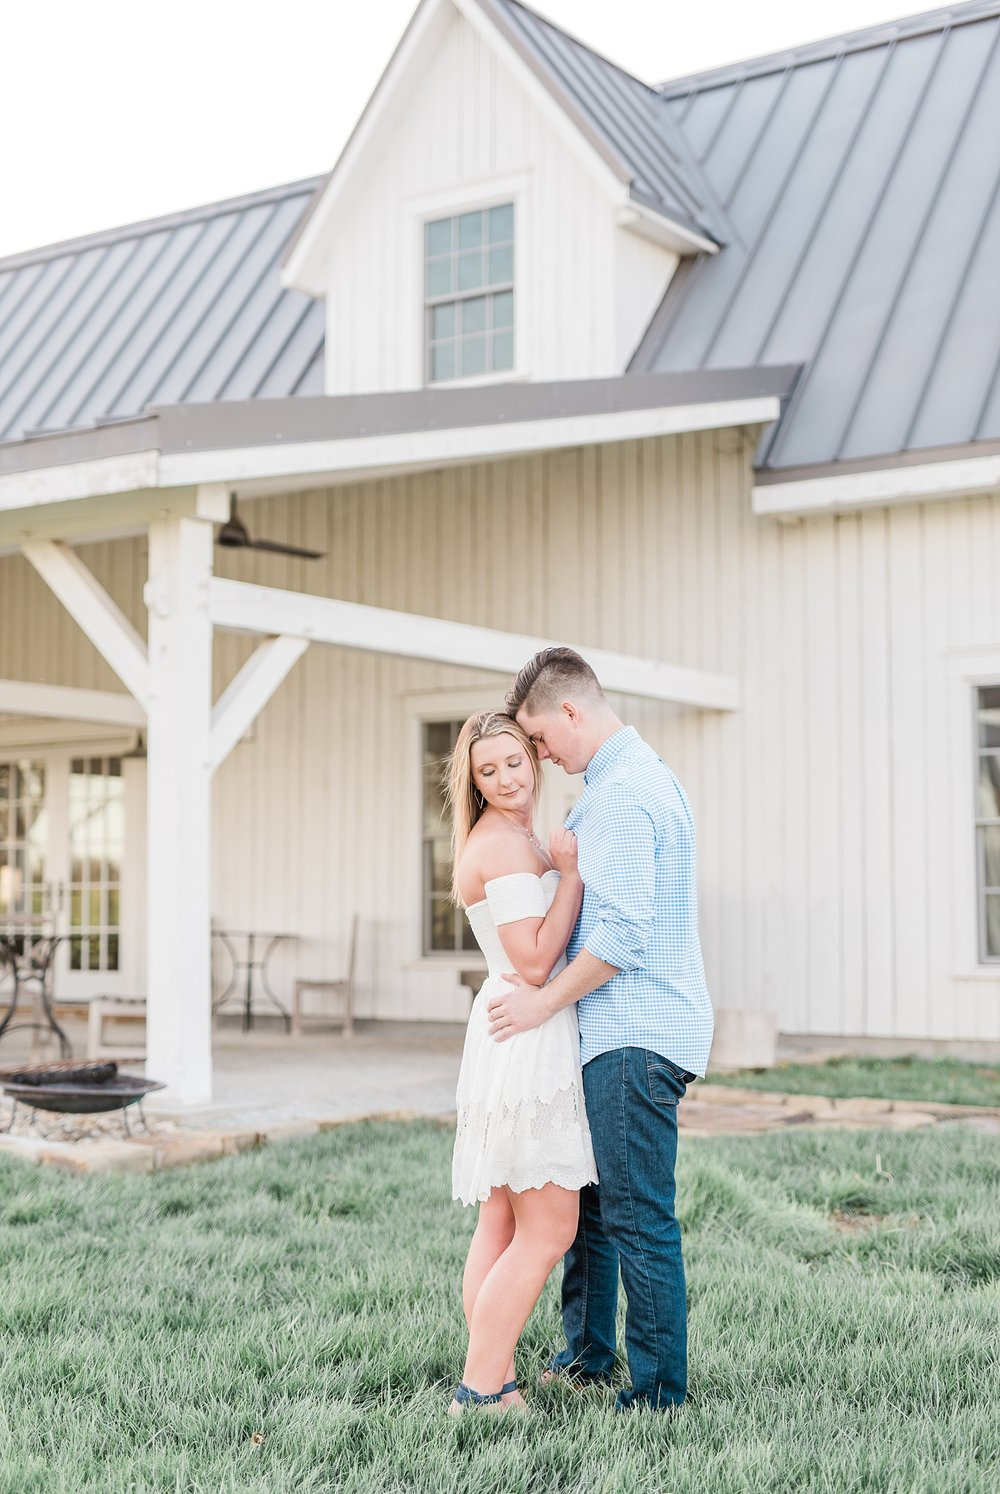 Spring Sunset Engagement Session with High School Sweethearts and Golden Retriever Puppy at Blue Bell Farm Fayette Missouri by Kelsi Kliethermes Photography_0012.jpg